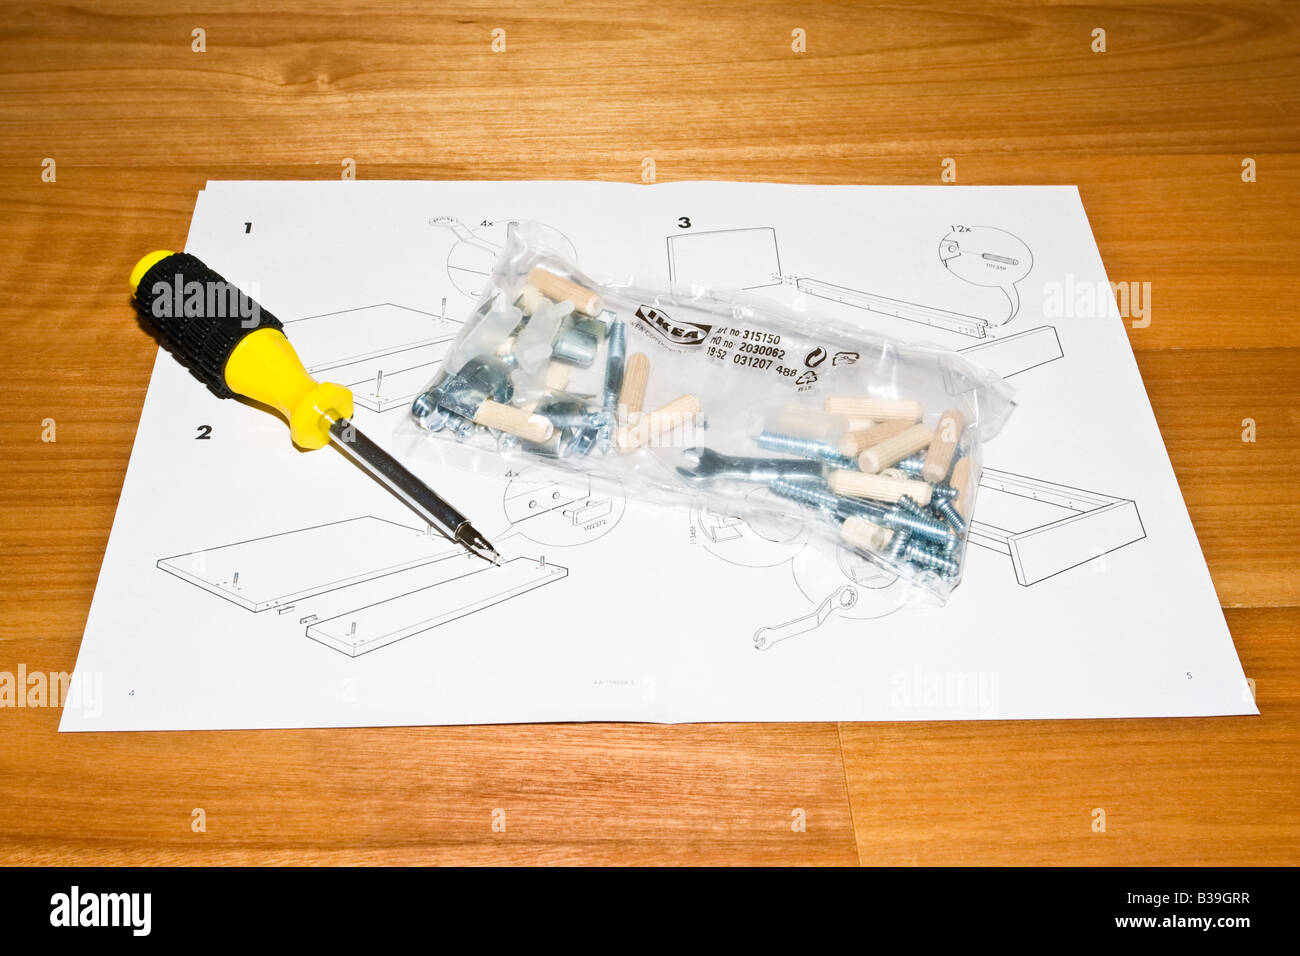 Flatpack Furniture Instructions With A Pack Of Self Assembly Tools And  Components And A Screwdriver